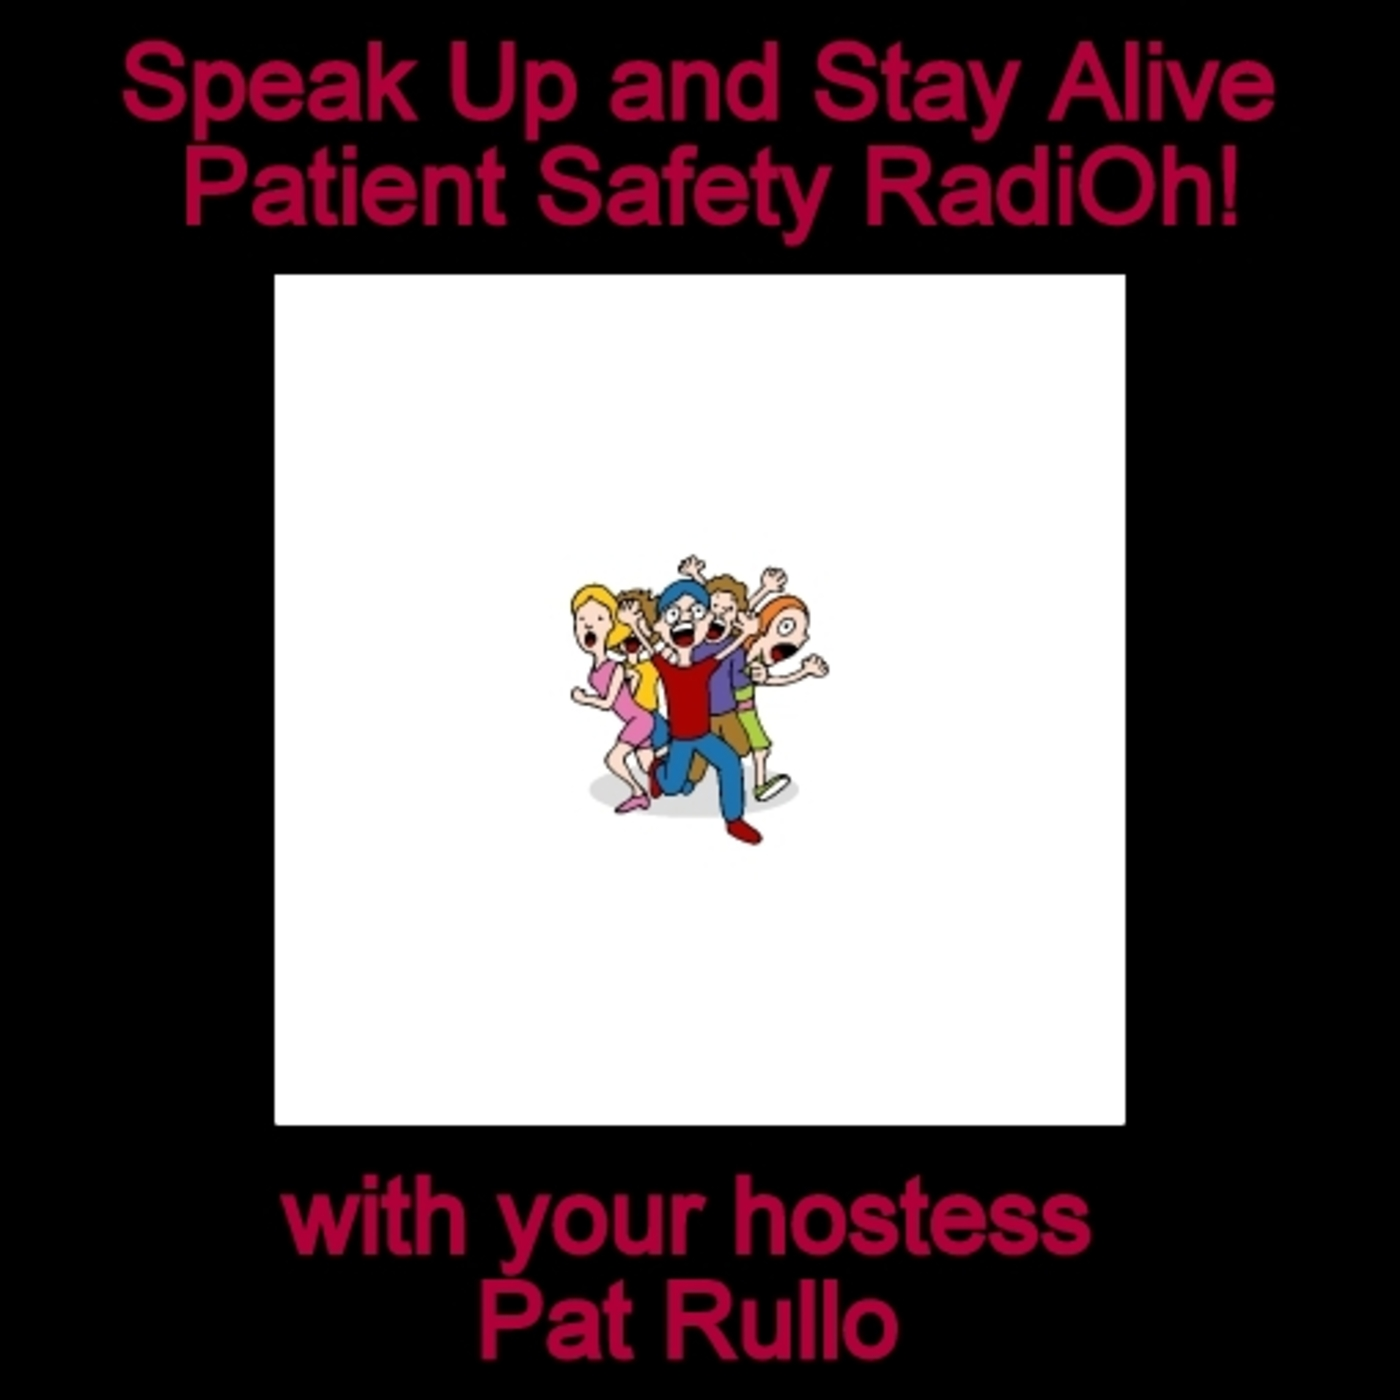 SPEAK UP AND STAY ALIVE is The Voice For Patient Safety